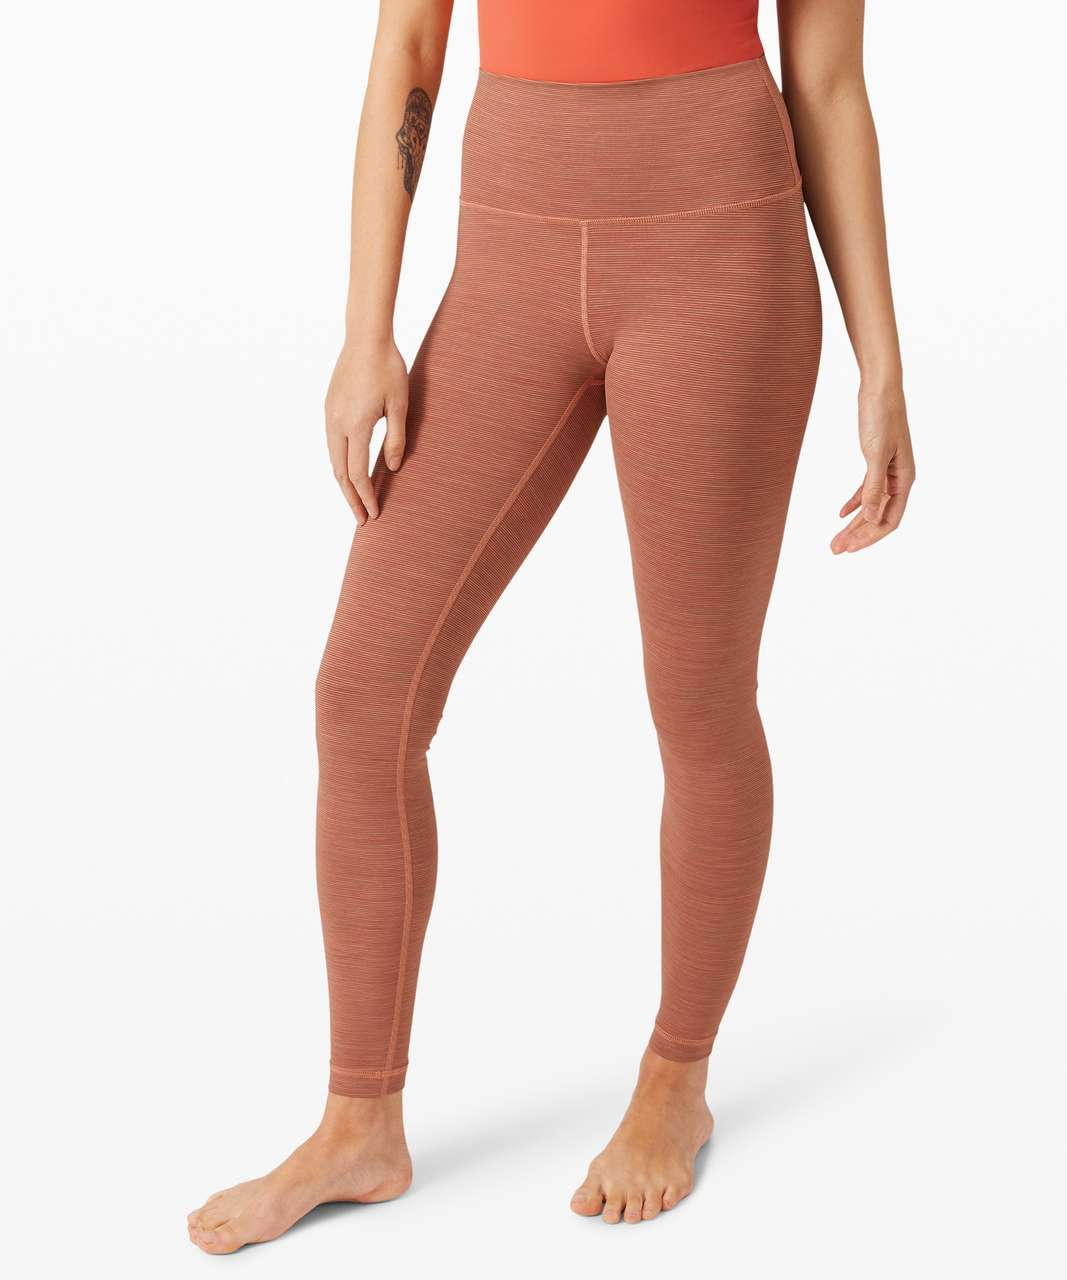 """Lululemon Wunder Under High-Rise Tight 28"""" *Luxtreme - Wee Are From Space Rustic Coral"""